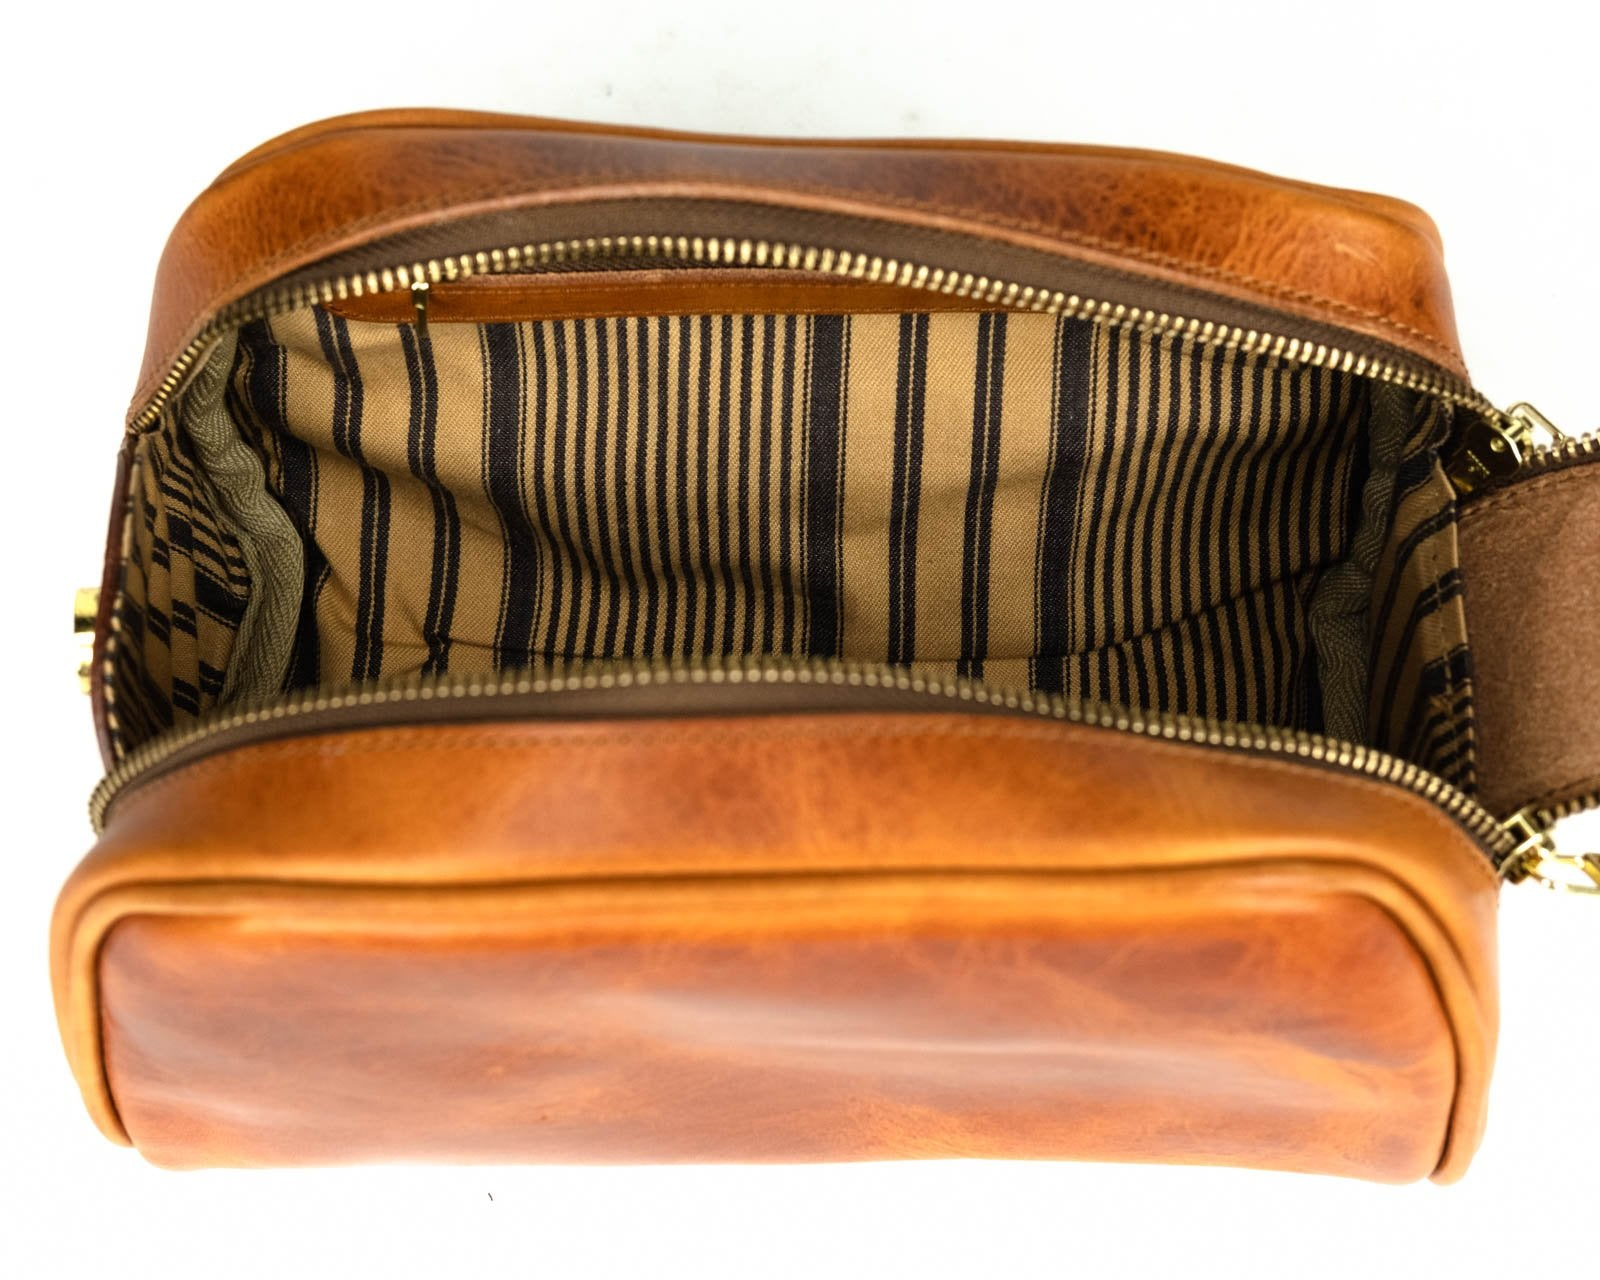 Heavy Duty Toiletry Bag